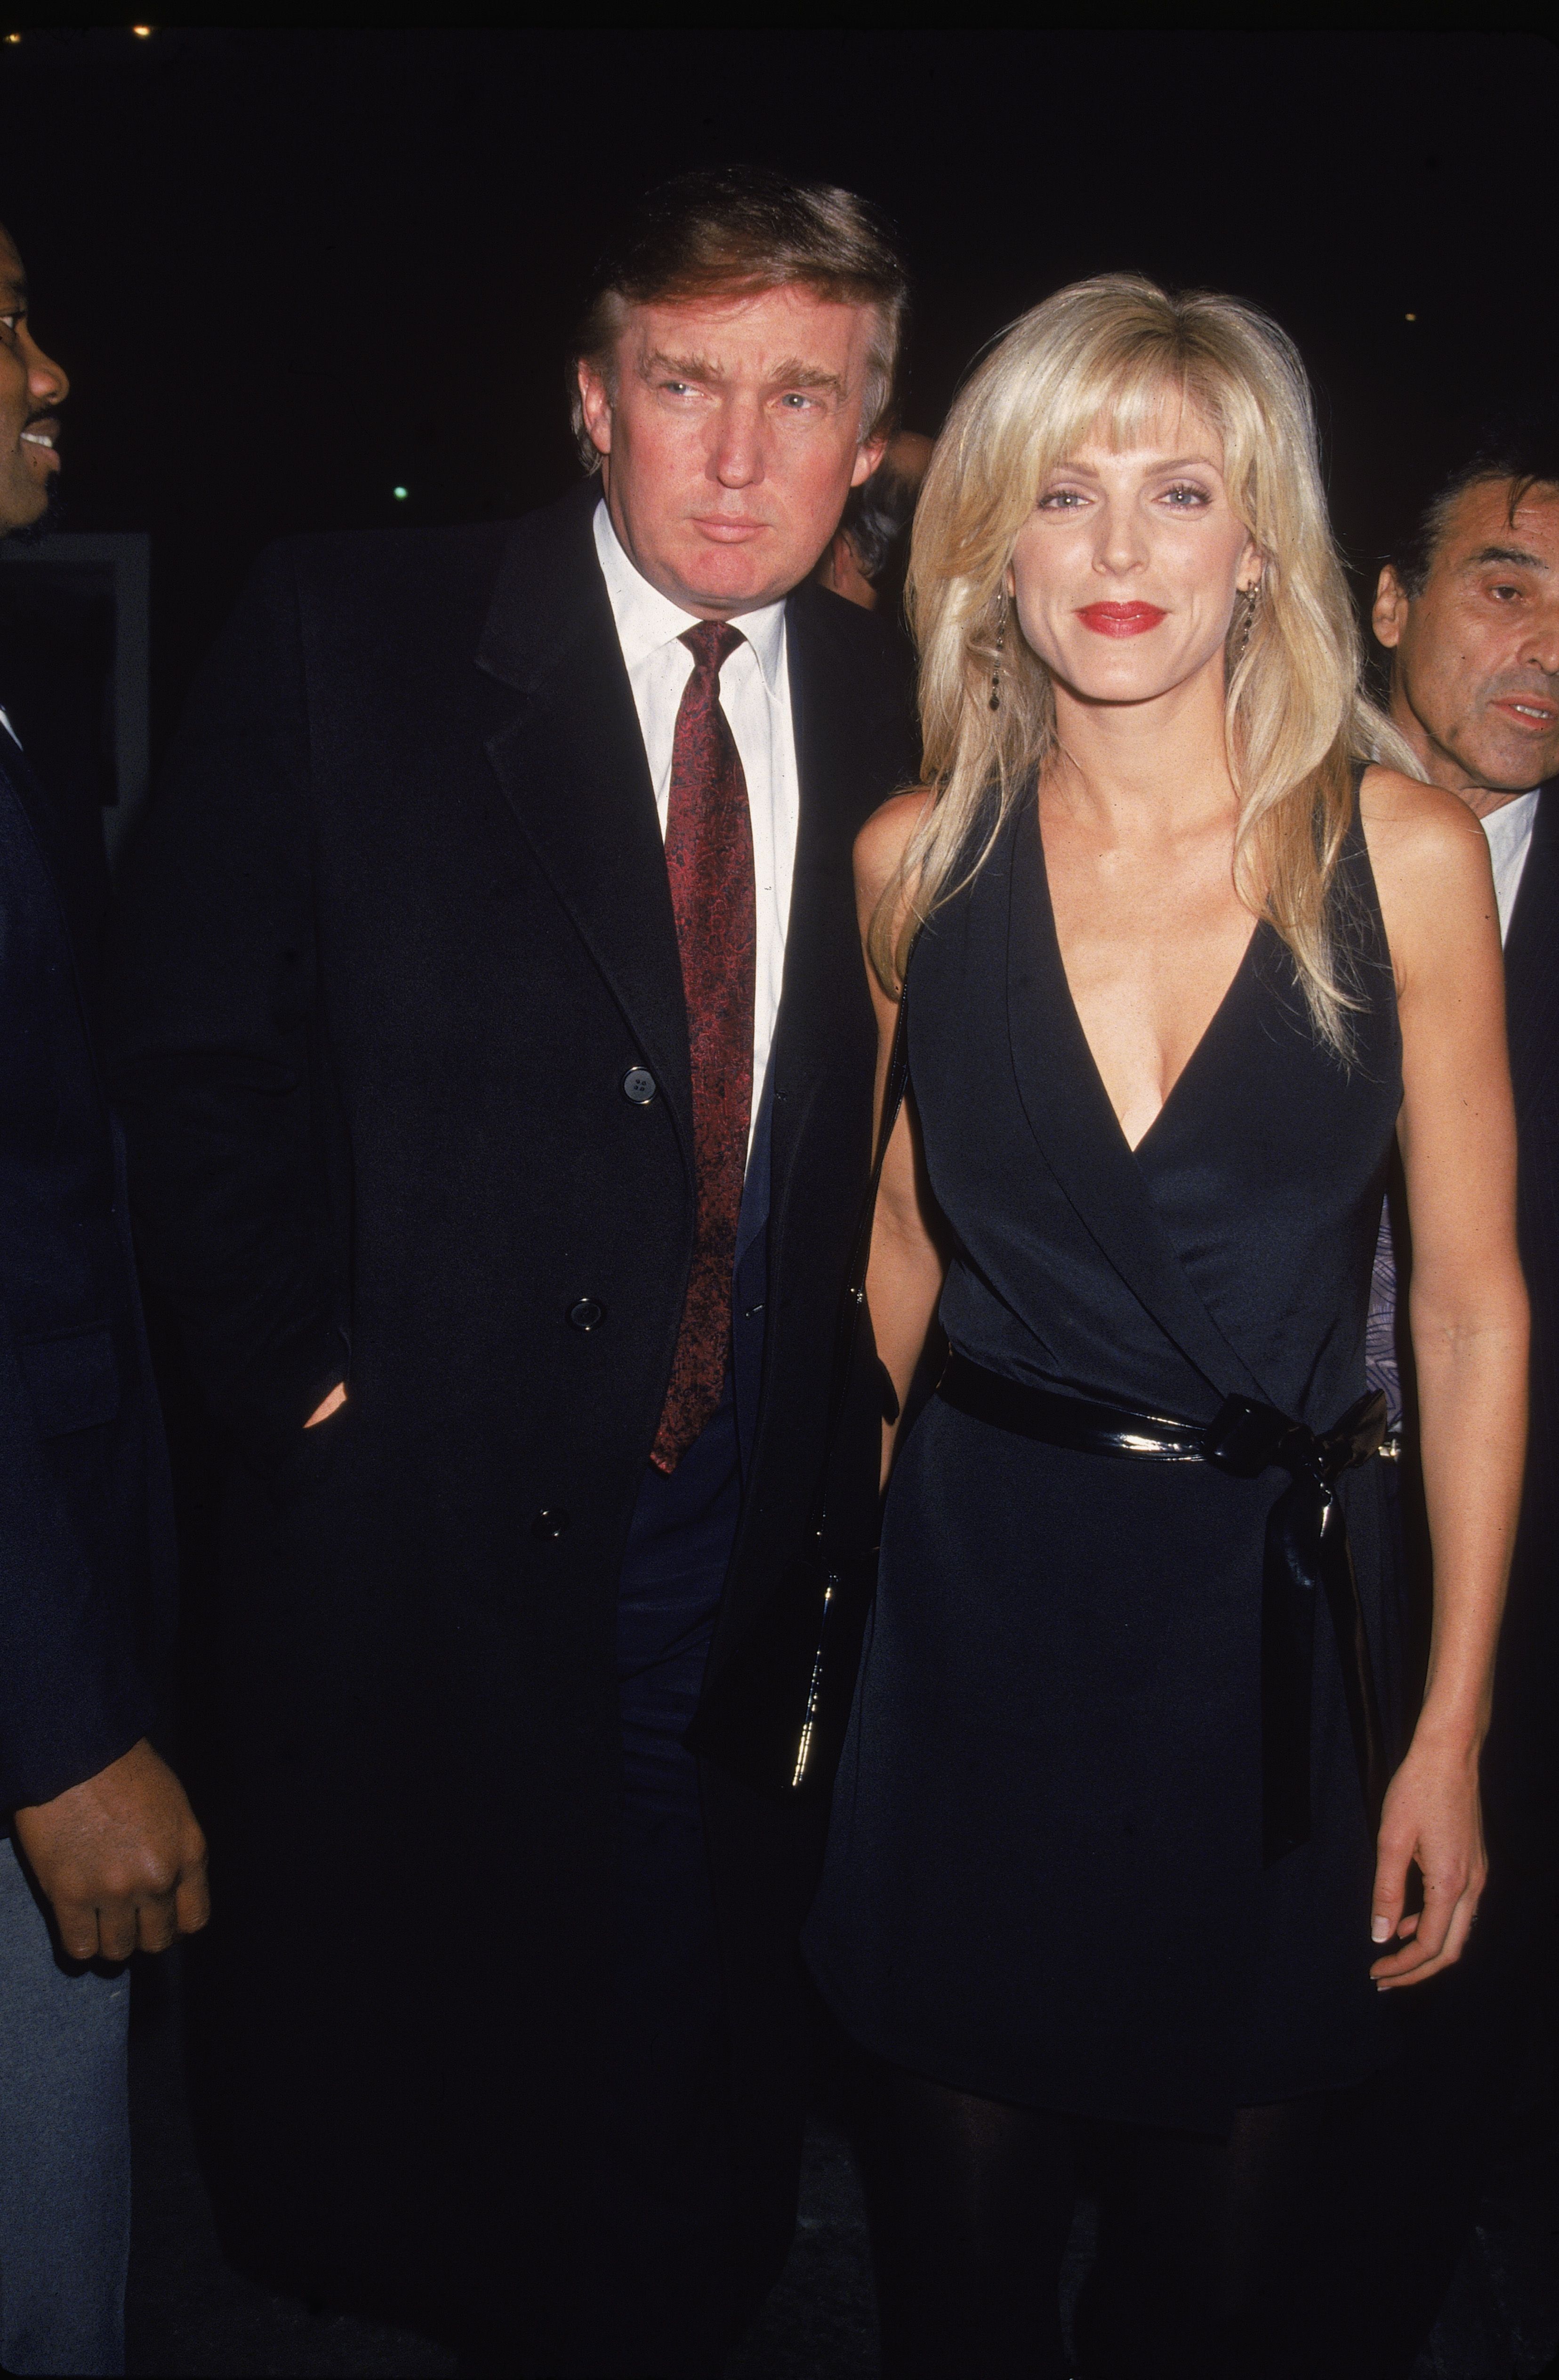 Donald Trump and Marla Maples  Donald Trump and Marla Maples at the Municipal Art Society Awards Gala in 1997 in New York | Source: Getty Images